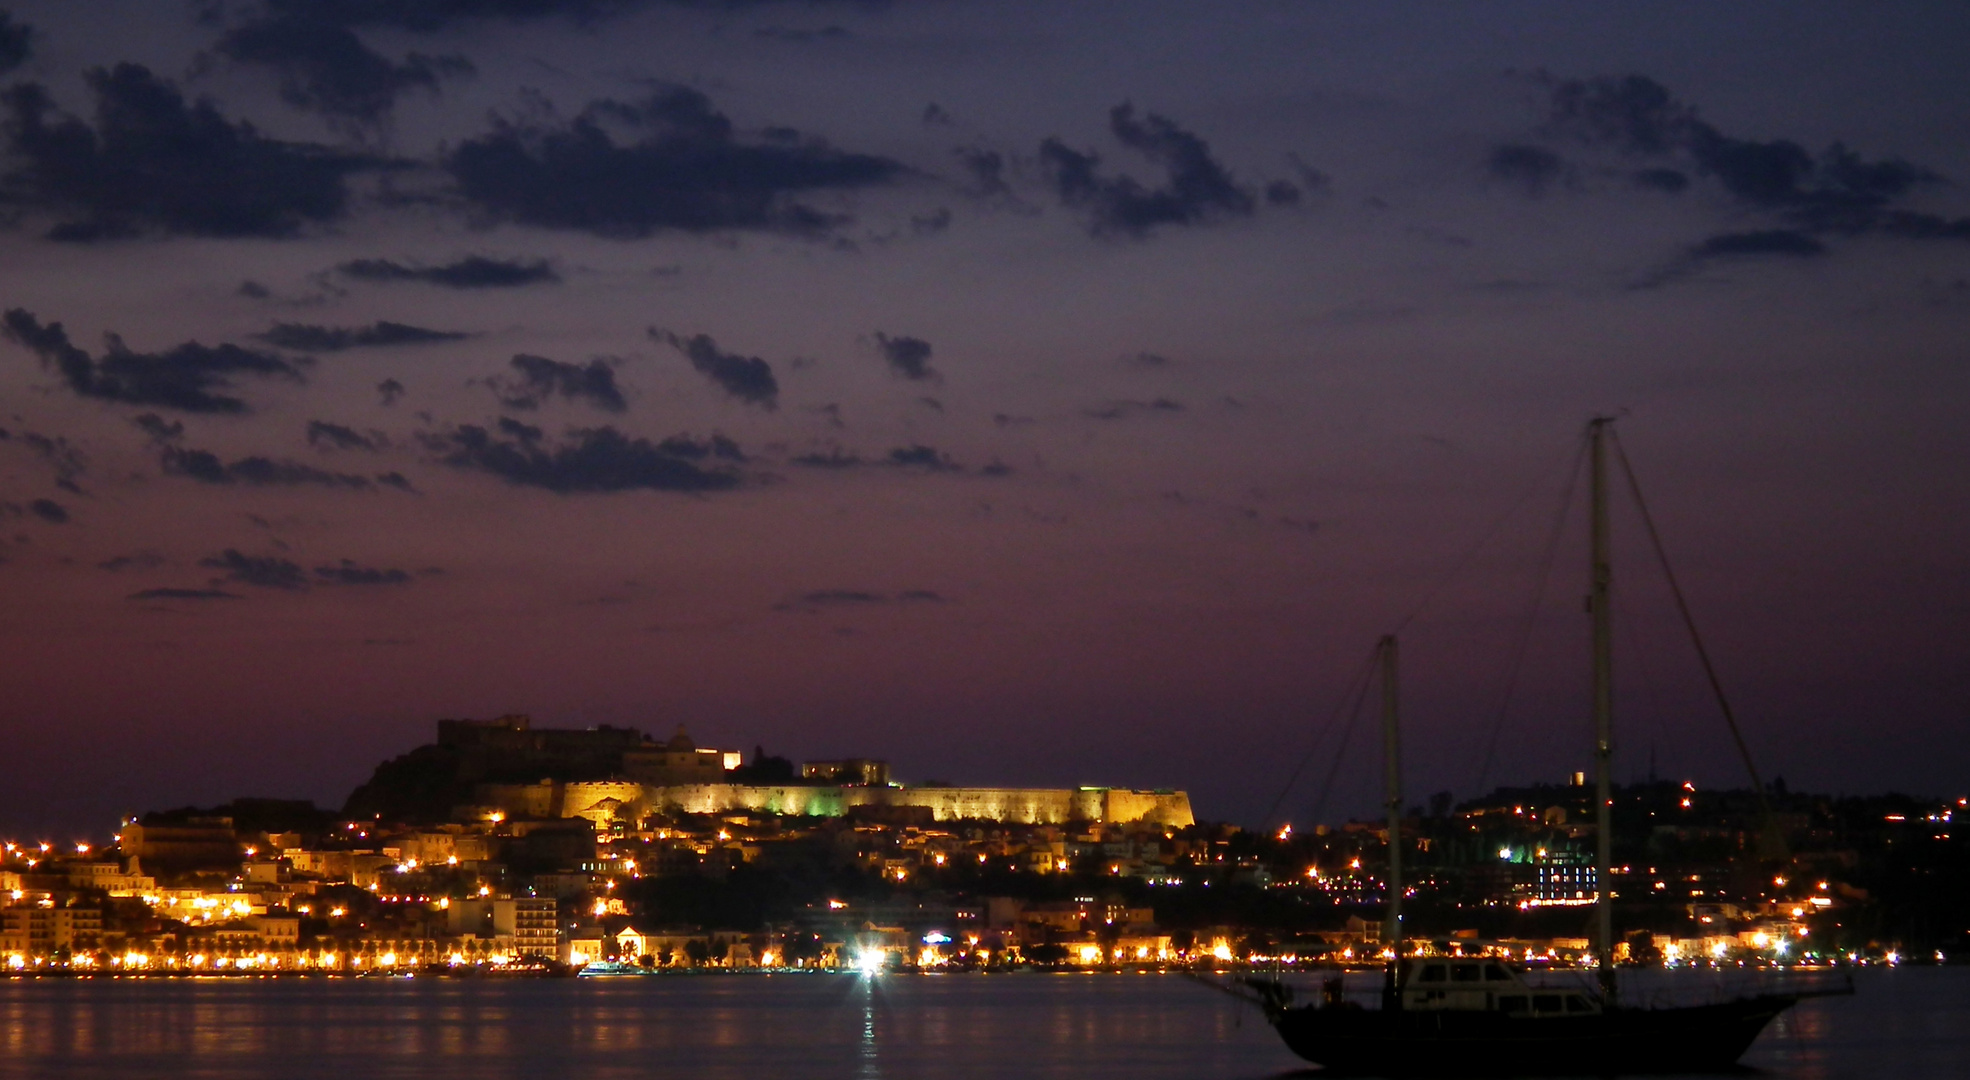 MILAZZO AM ABEND